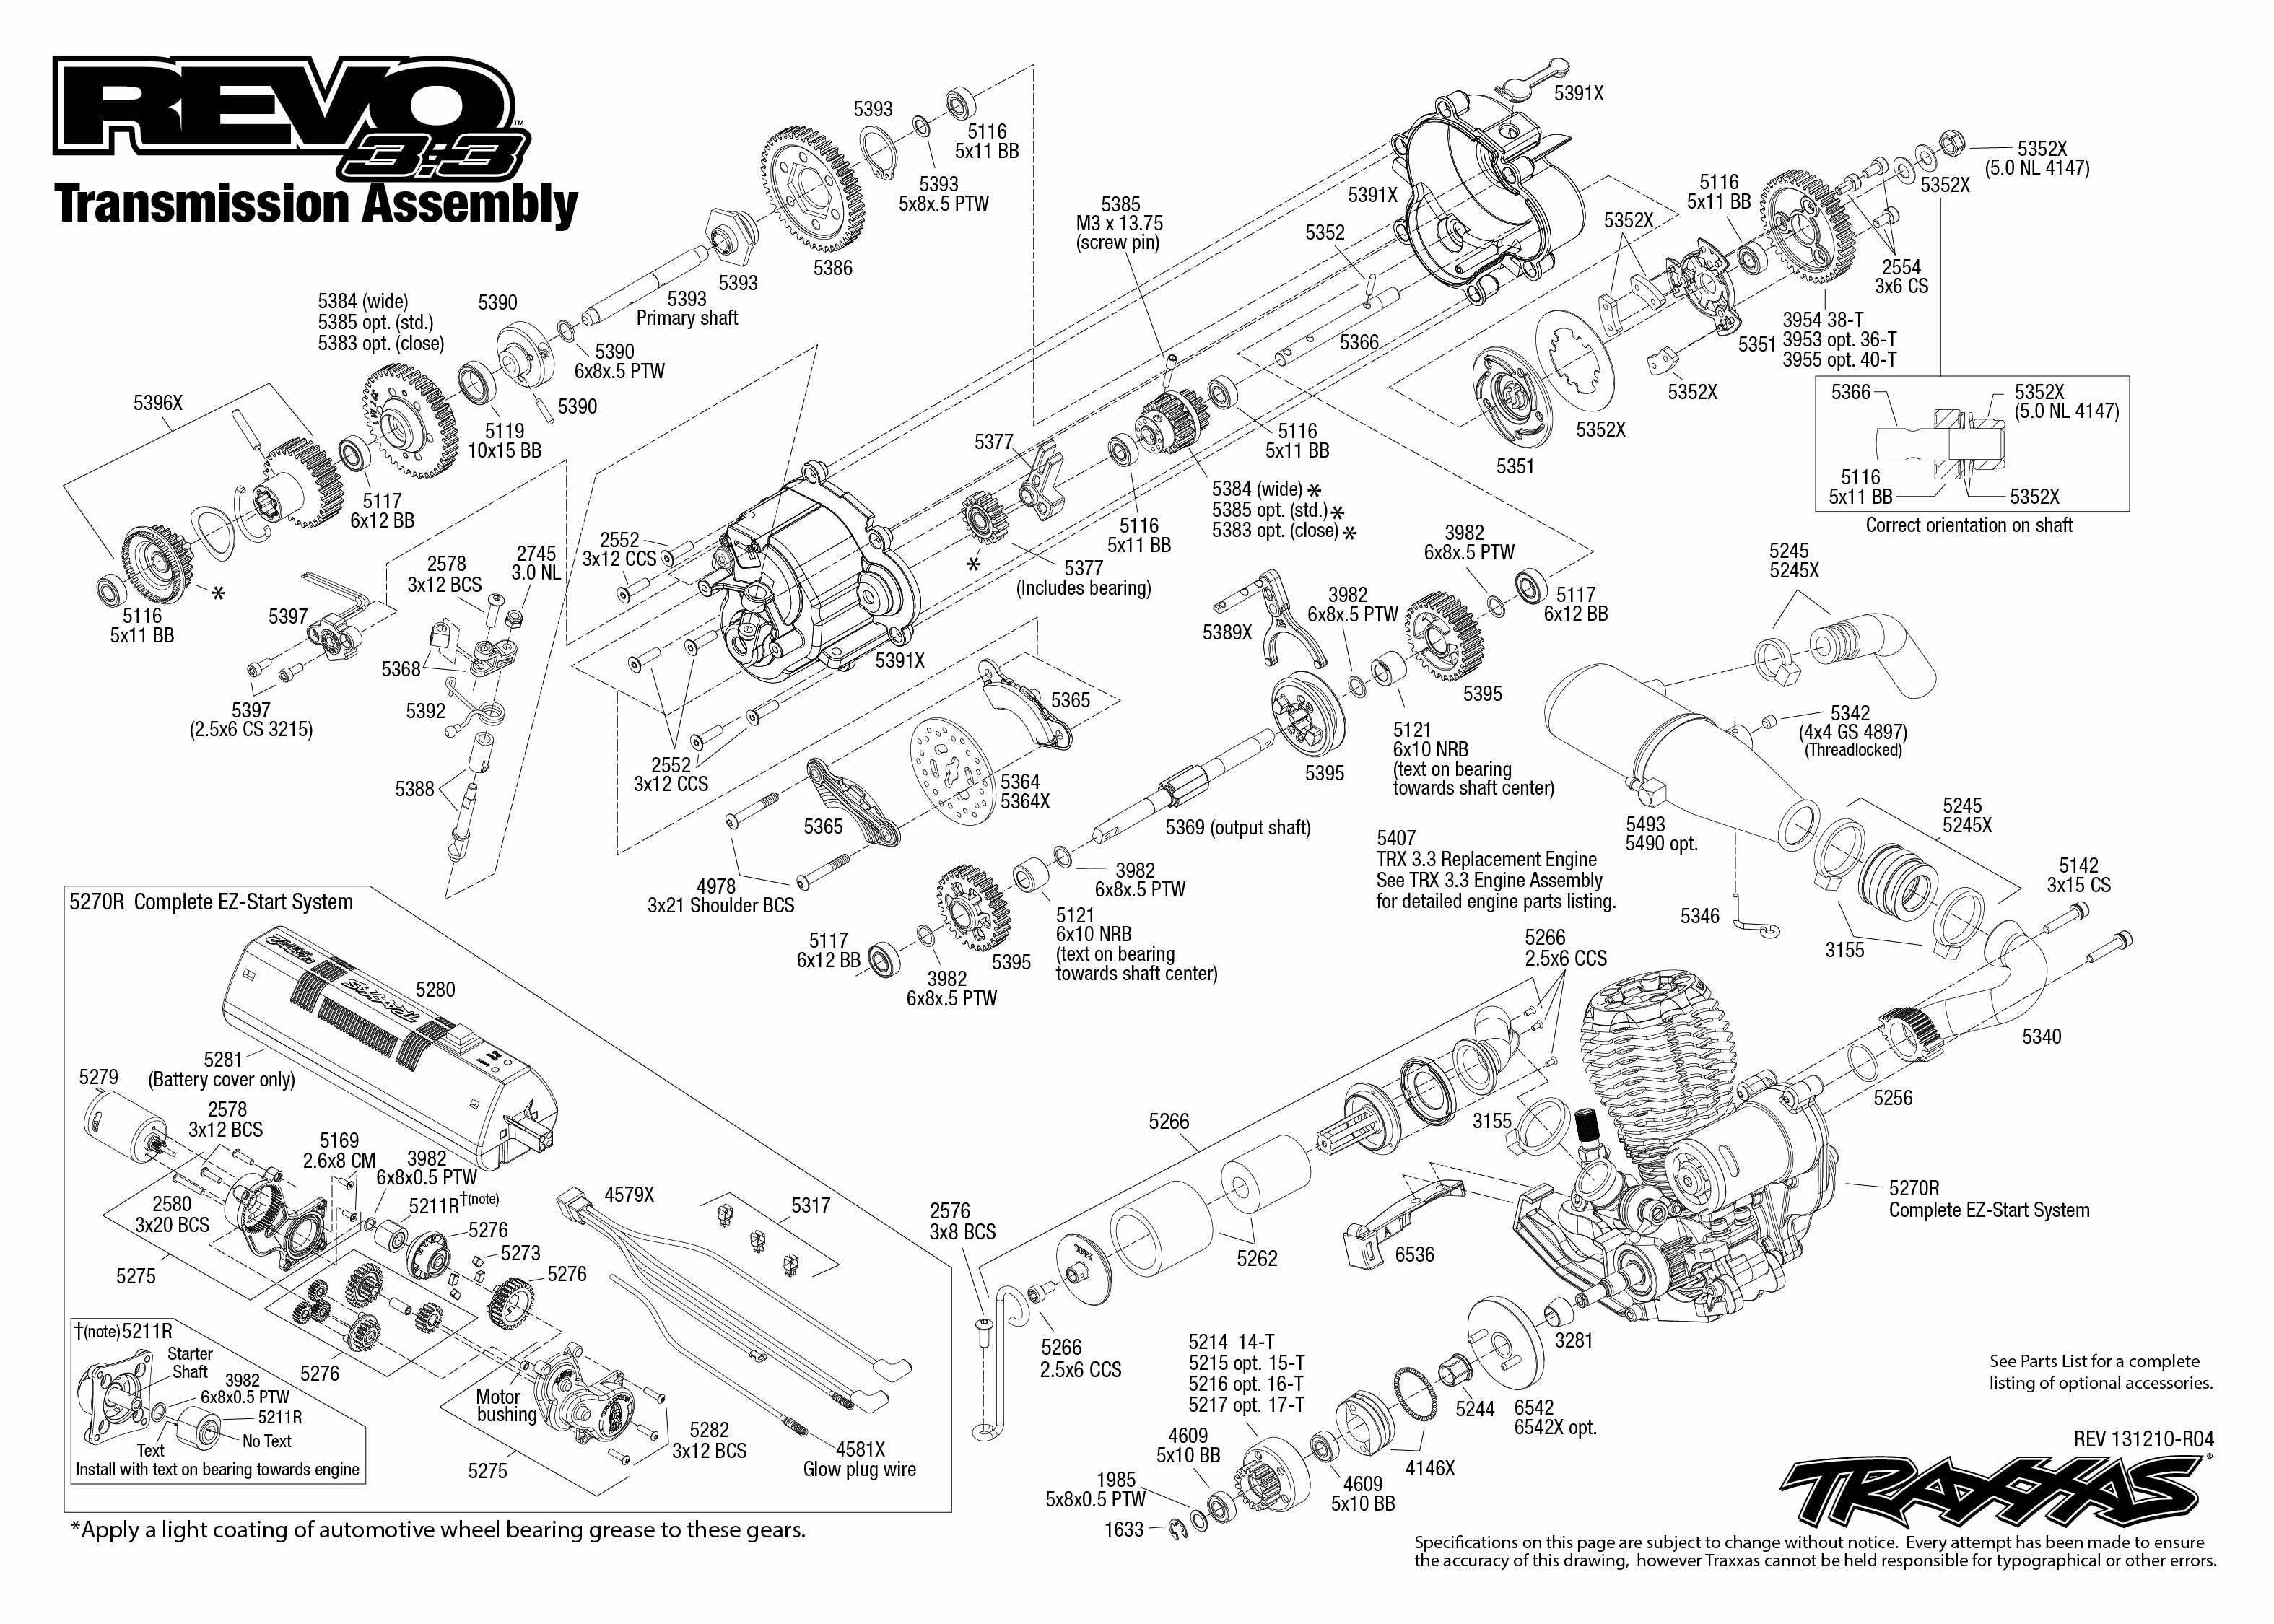 jato parts diagram wiring diagram subcon rh 6 2 1 ocotillo paysage com Traxxas Jato Transmission Diagram traxxas jato 3.3 wiring diagram